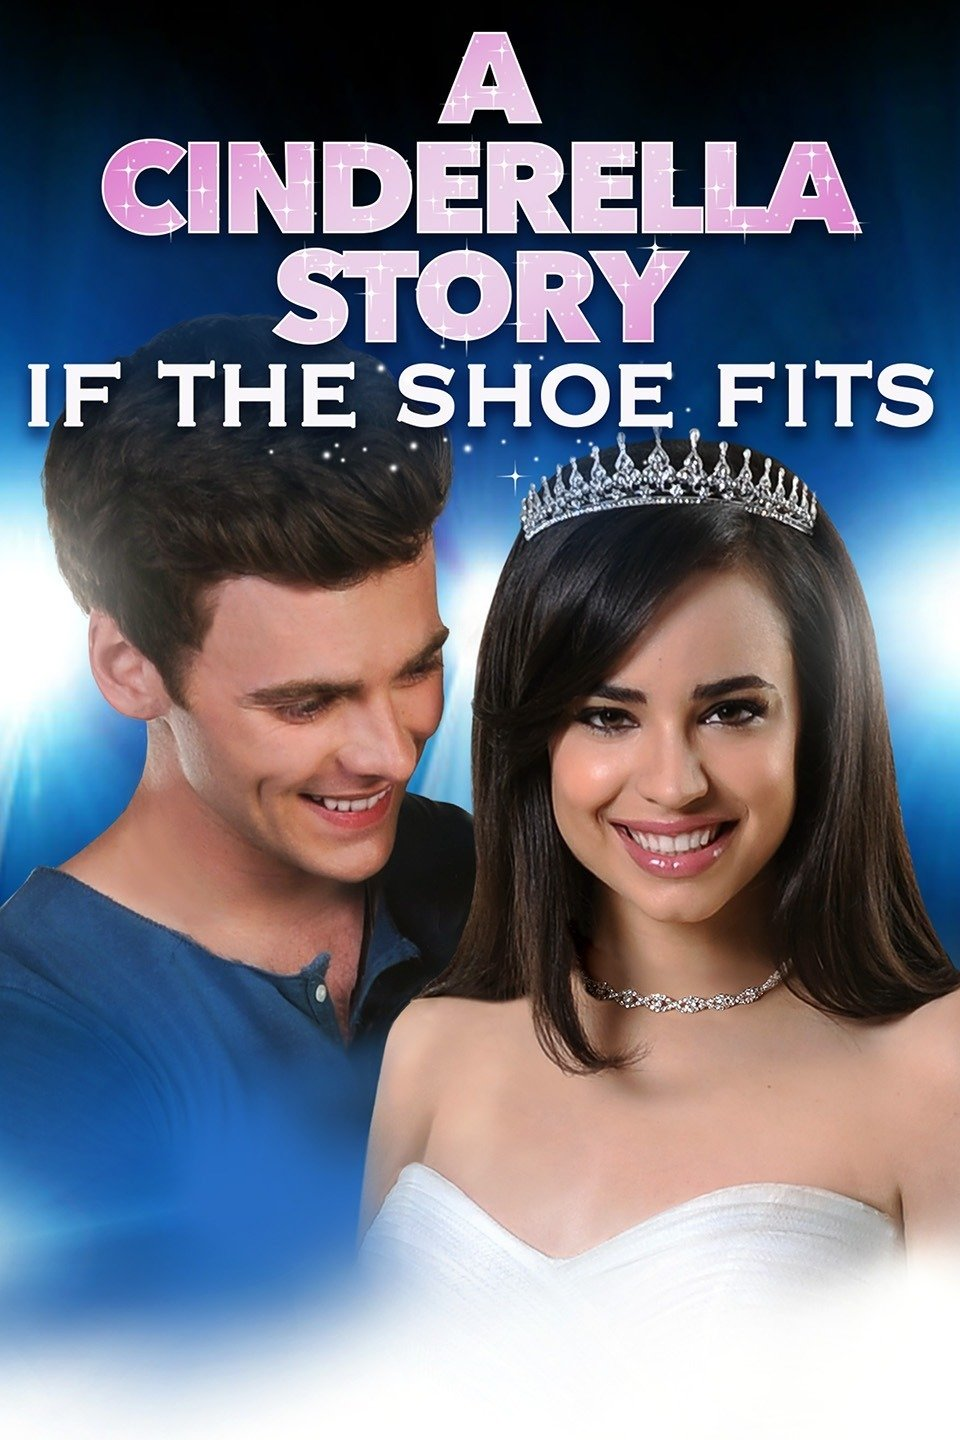 A Cinderella Story: If the Shoe Fits-A Cinderella Story: If the Shoe Fits